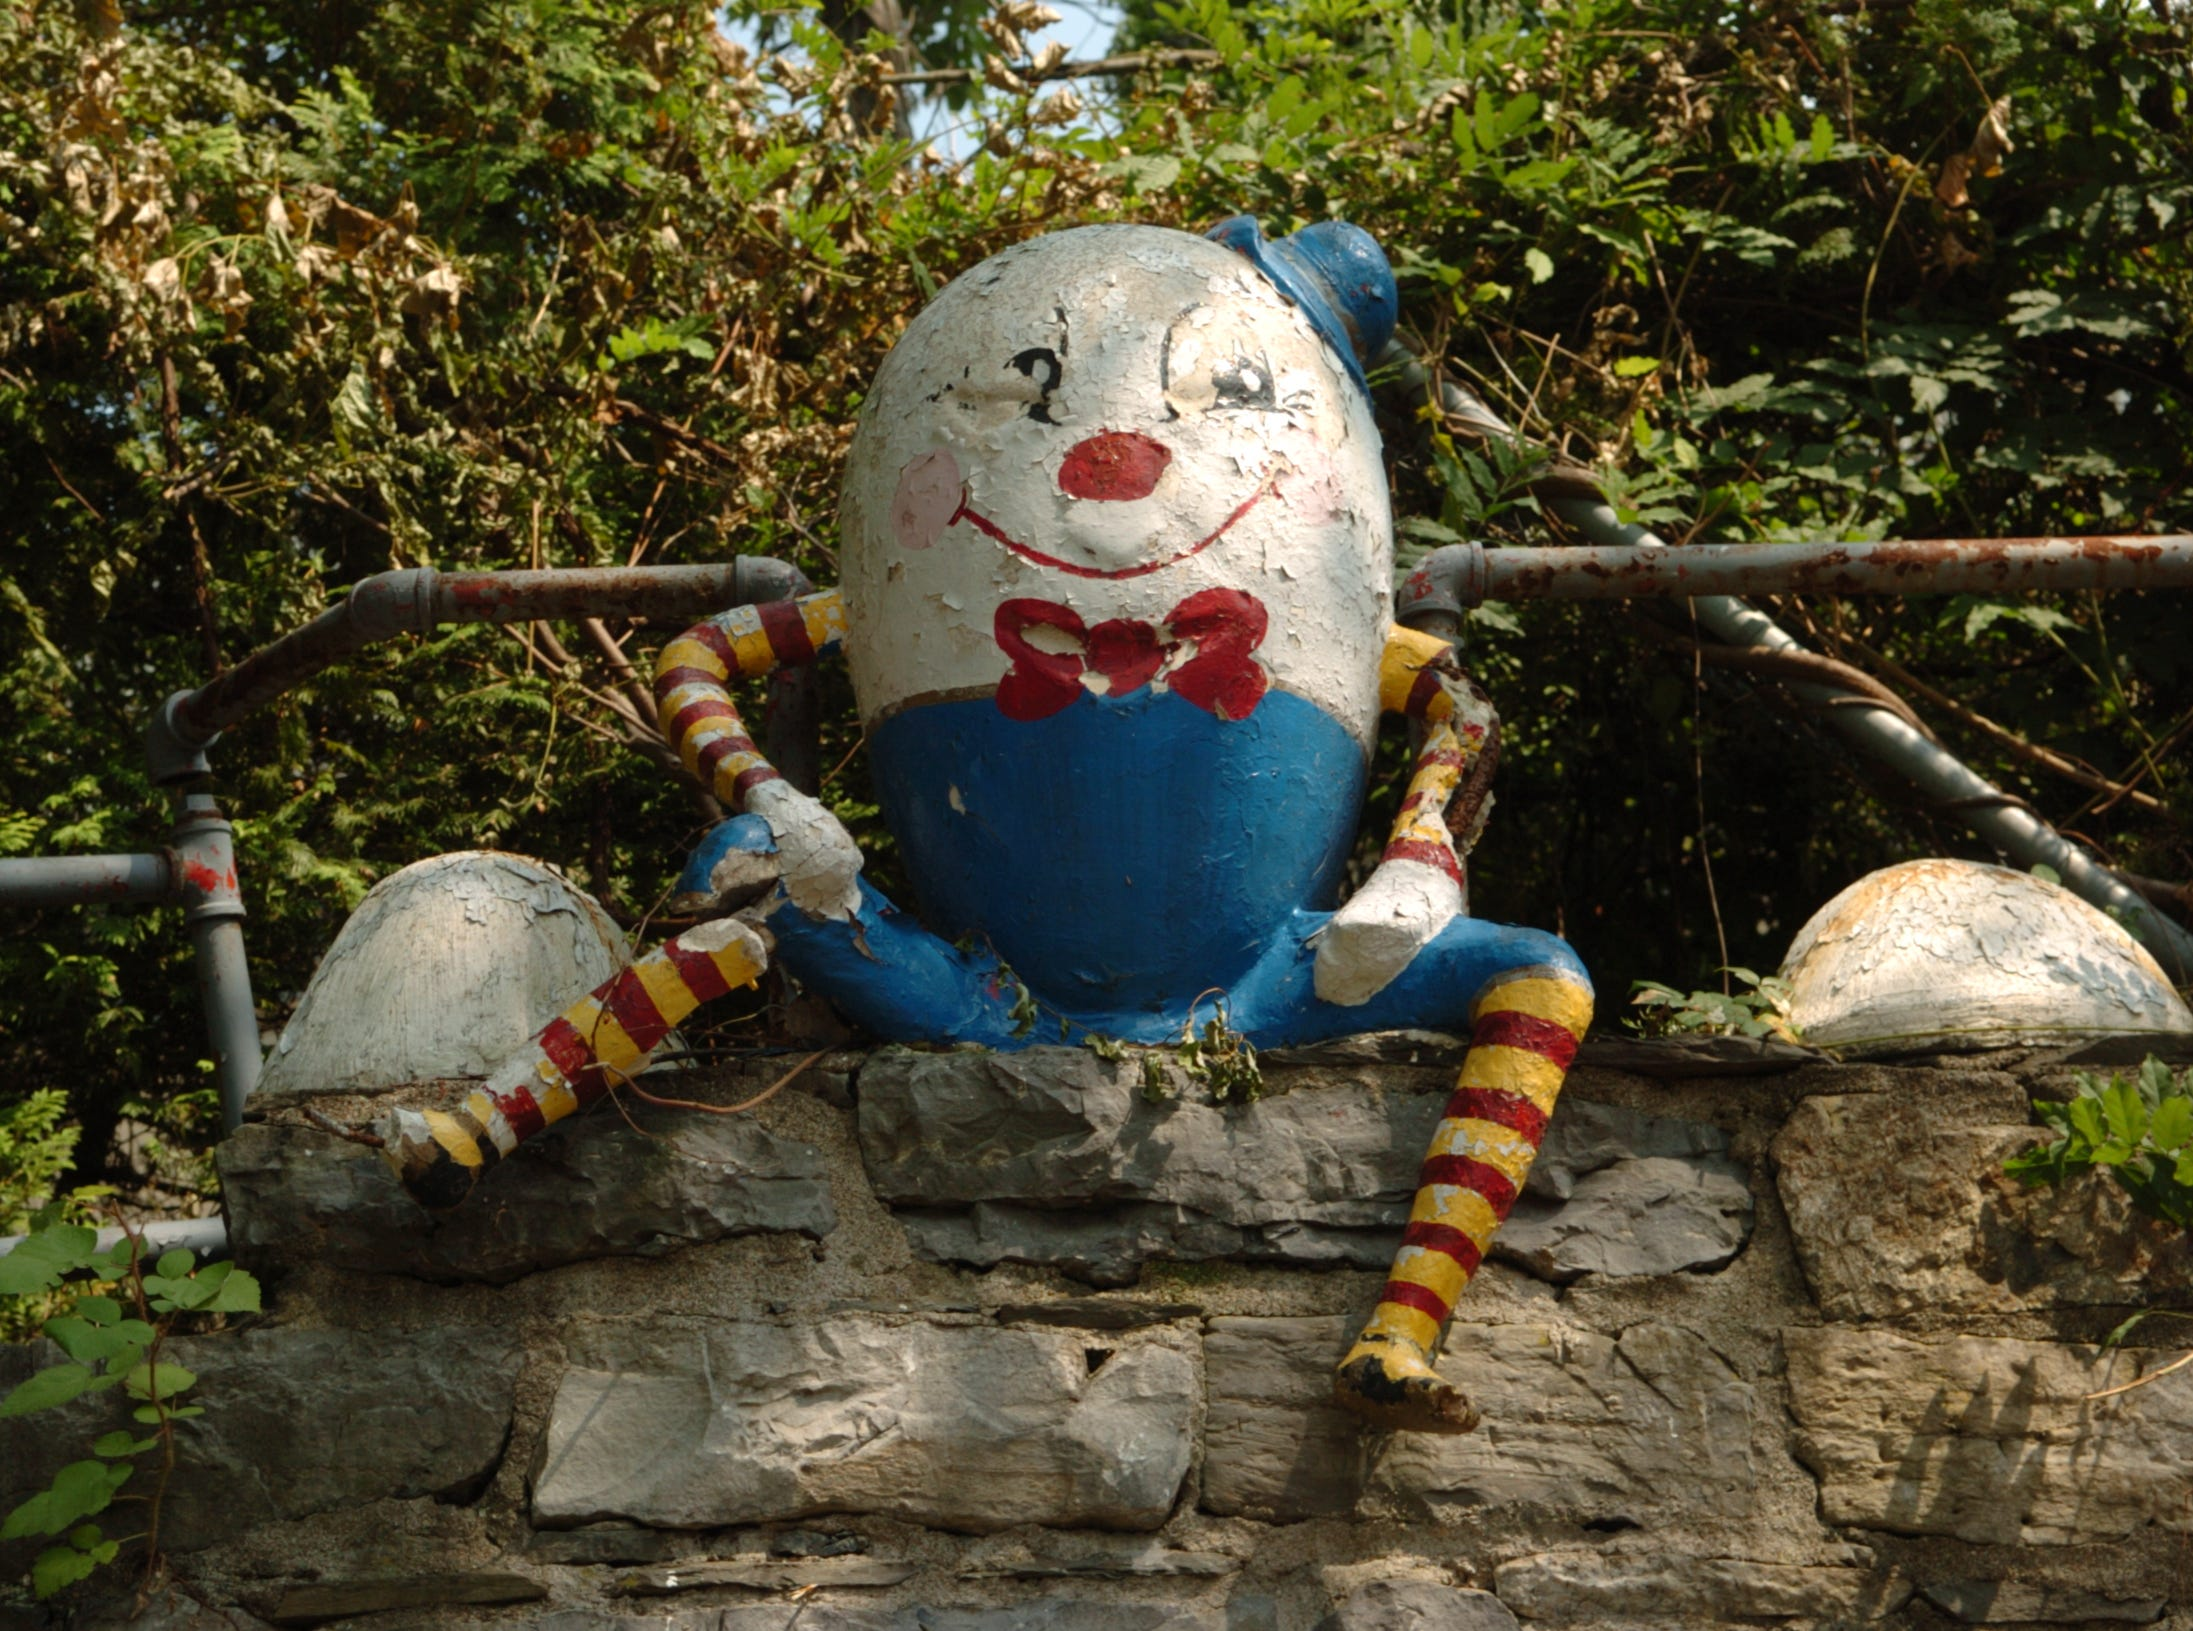 2007: Humpty Dumpty sat on a wall, one of the several nursery rhyme scenes at the Gingerbread Castle in Hamburg.